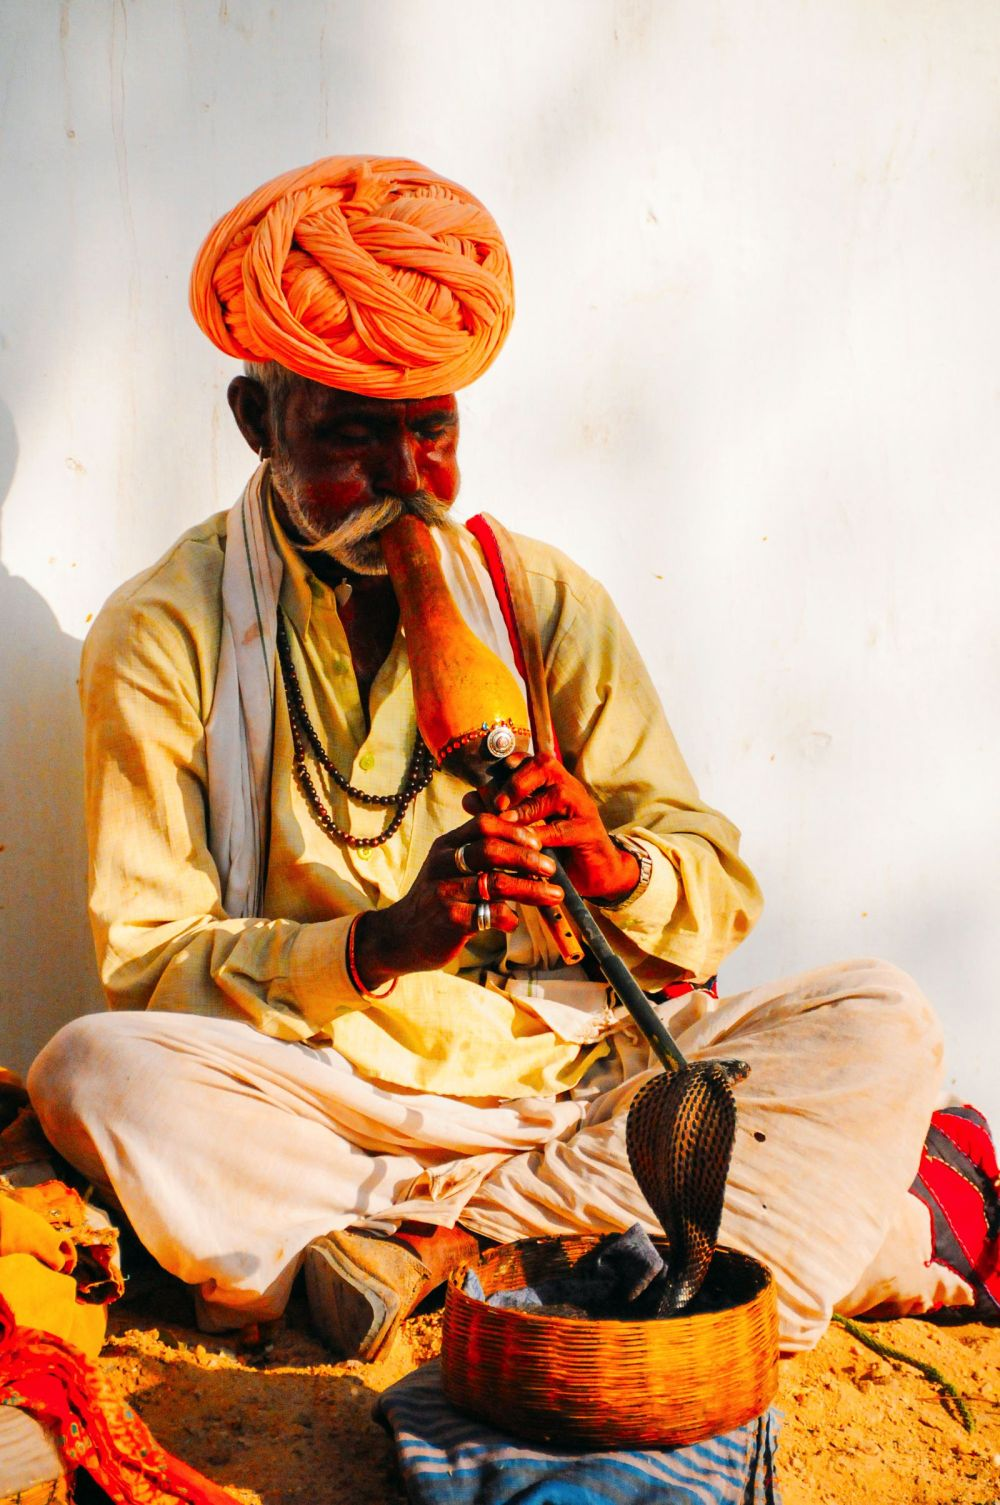 Snake Charming Cruelty (3)